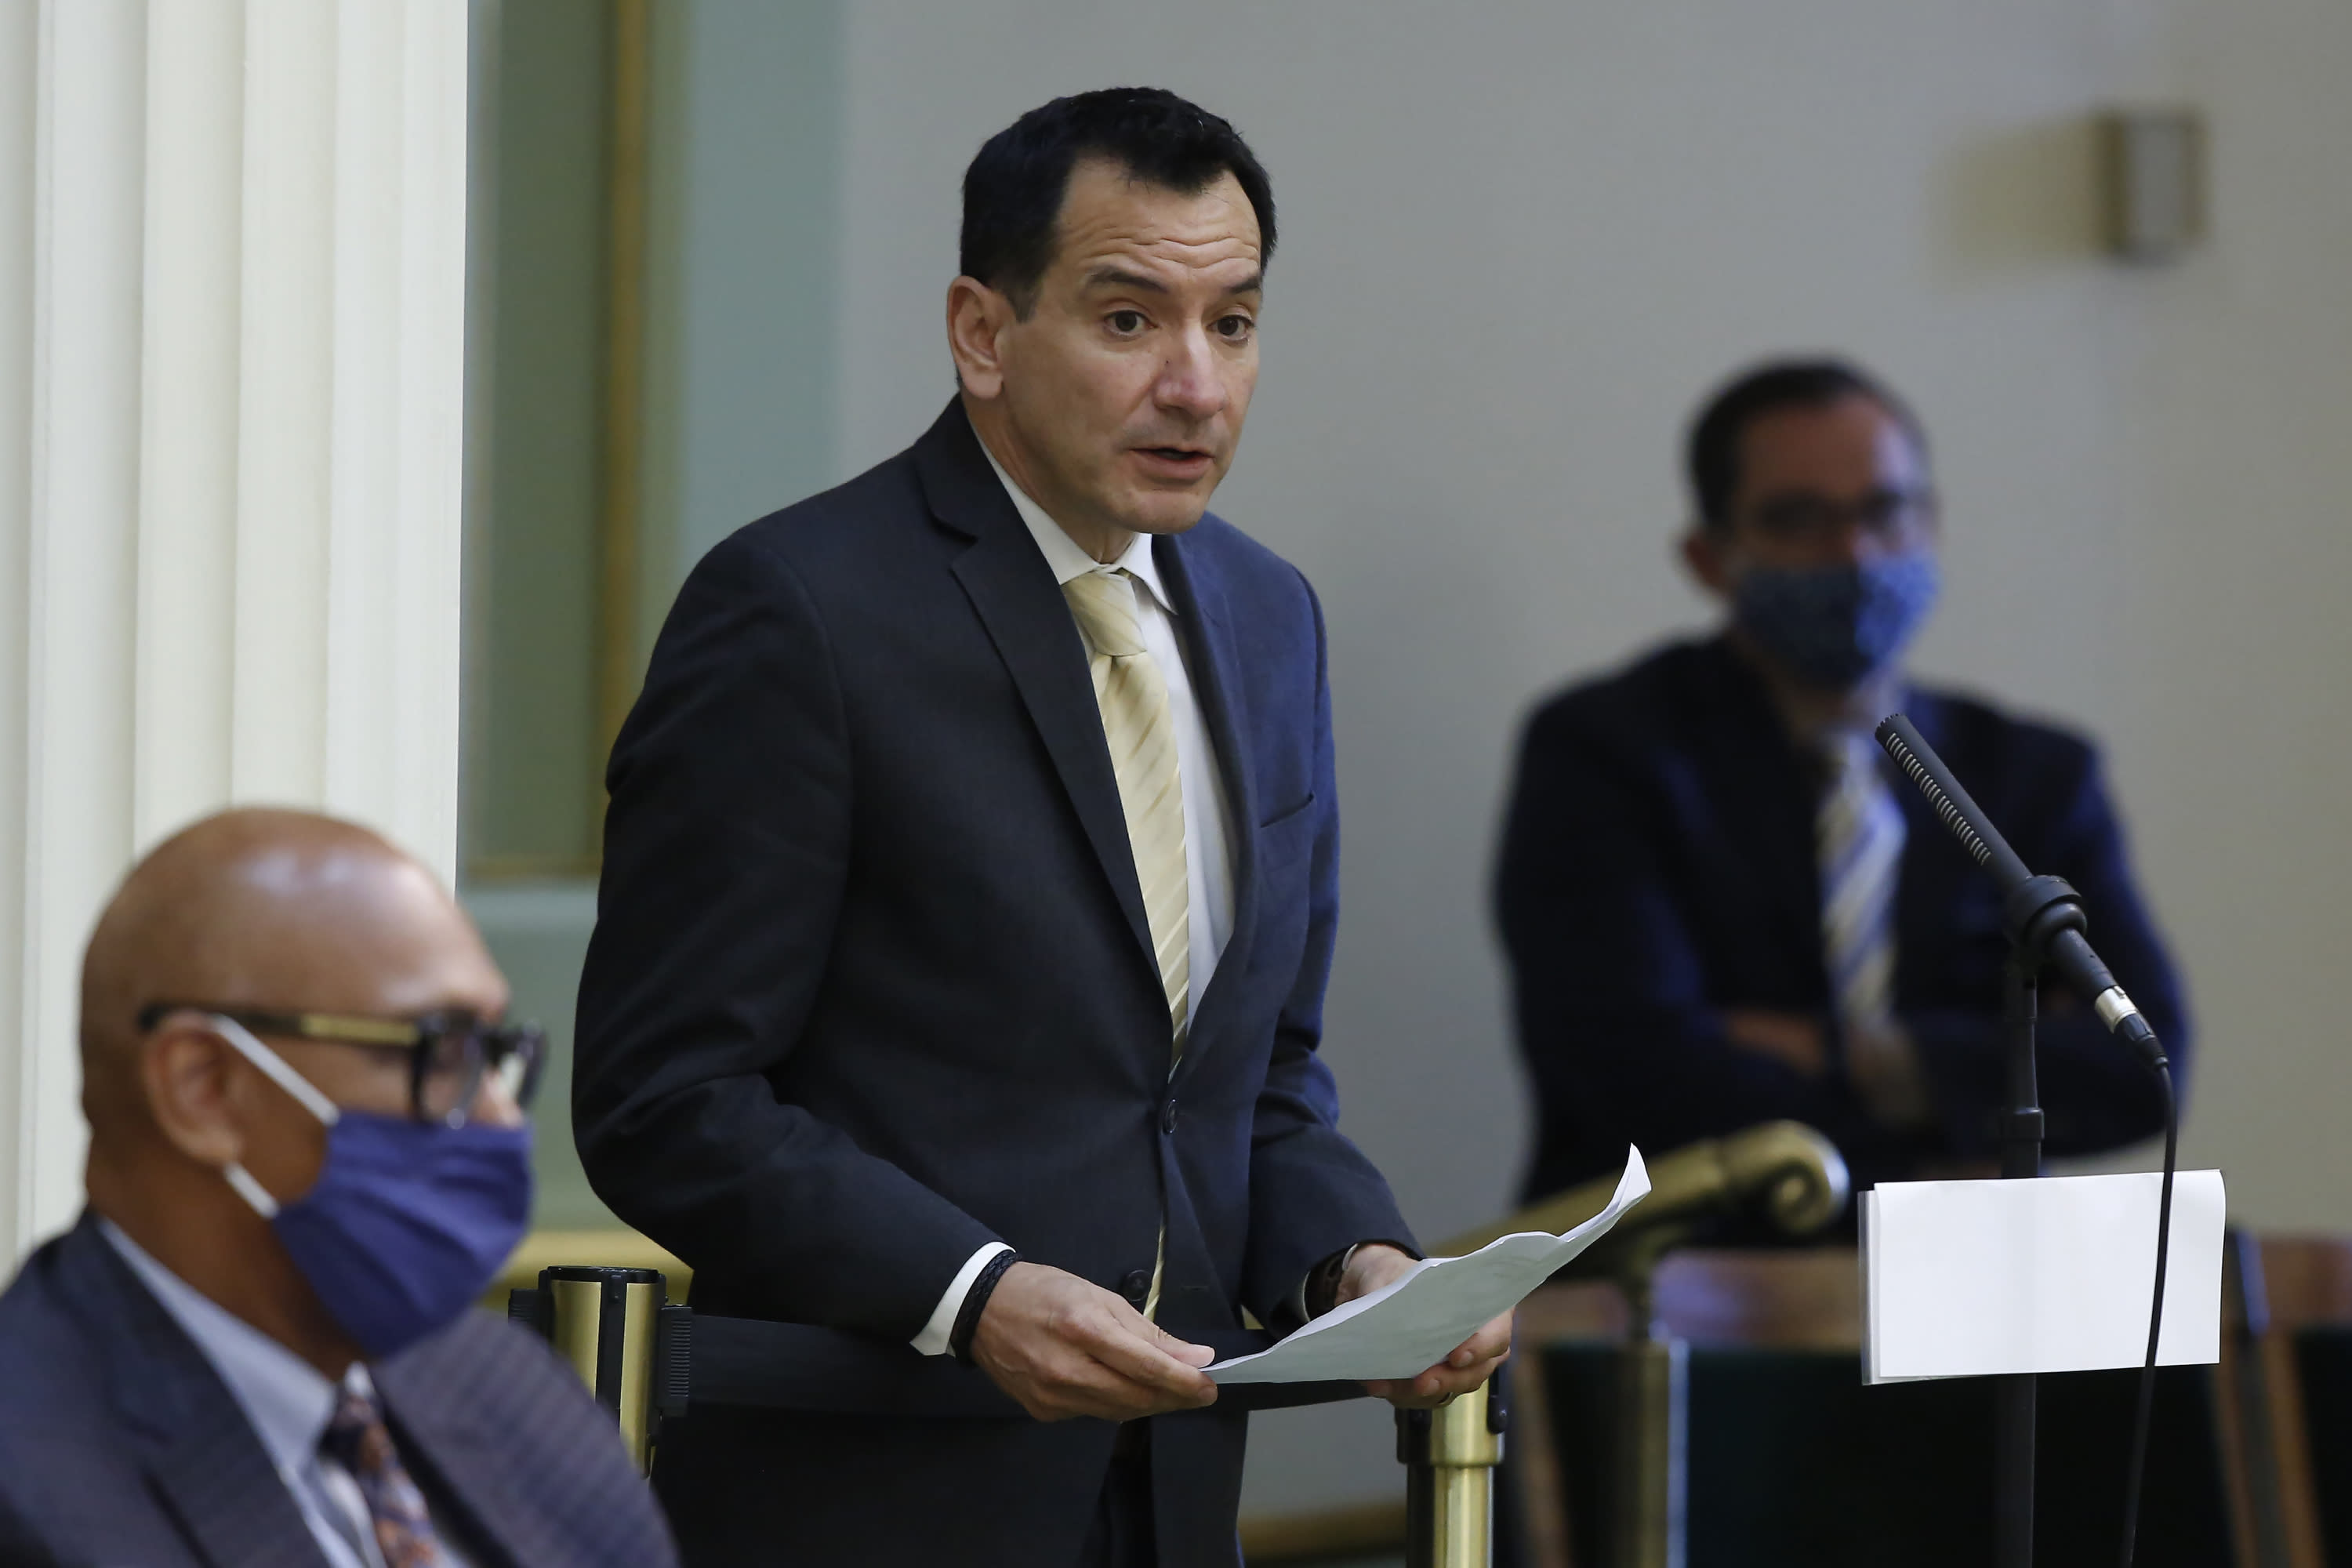 FILE - In this June 15, 2020, file photo, Assembly Speaker Anthony Rendon, D-Lakewood, urges lawmakers to approve the state budget bill, at the Capitol in Sacramento, Calif. A coronavirus outbreak in the California Legislature has indefinitely delayed the state Assembly's return to work from a scheduled summer recess. Rendon's office confirmed five people who work in the Assembly have tested positive for the coronavirus. They include Assemblywoman Autumn Burke, who is believed to have contracted the virus while on the Assembly floor last month. (AP Photo/Rich Pedroncelli, File)